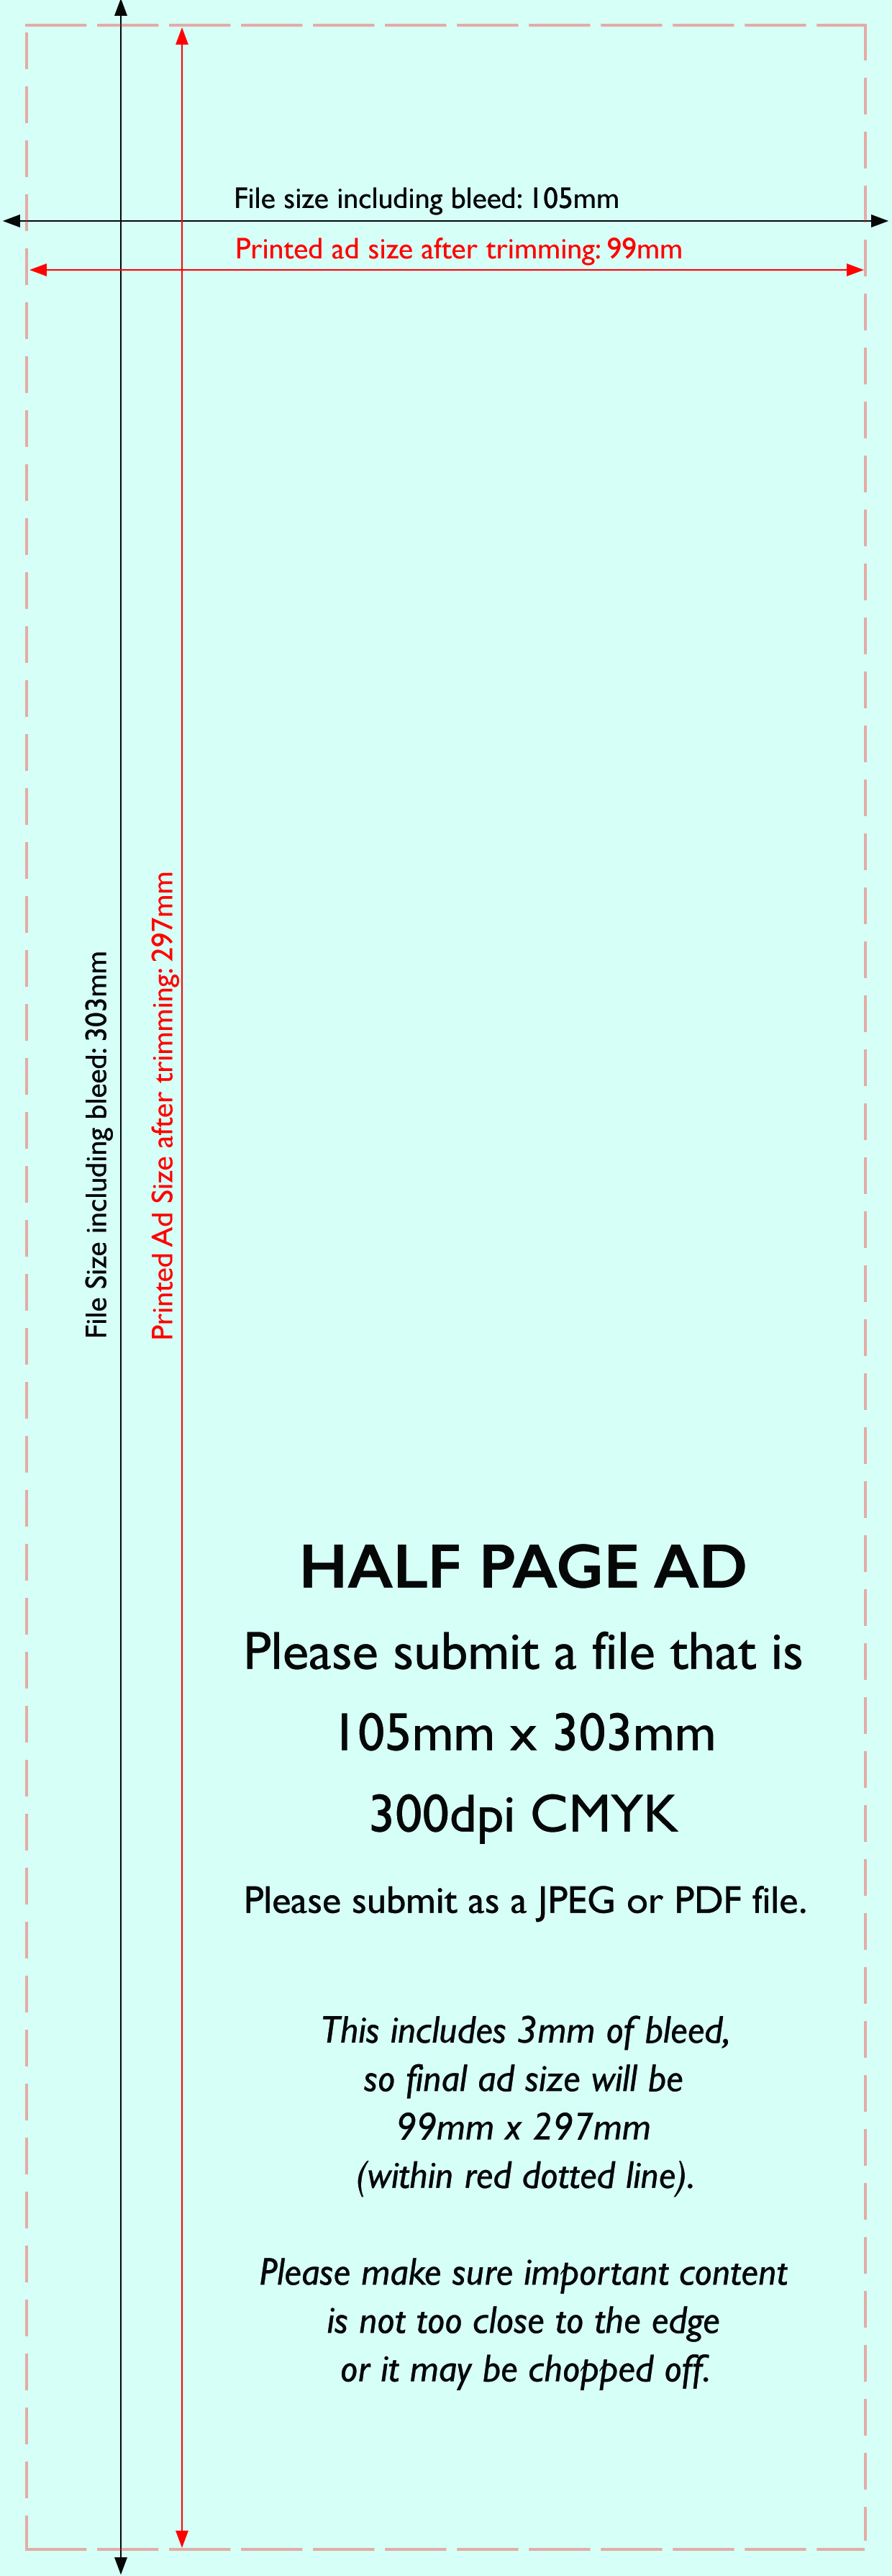 Advertise in the esdc magazine half page ad template tall pronofoot35fo Choice Image